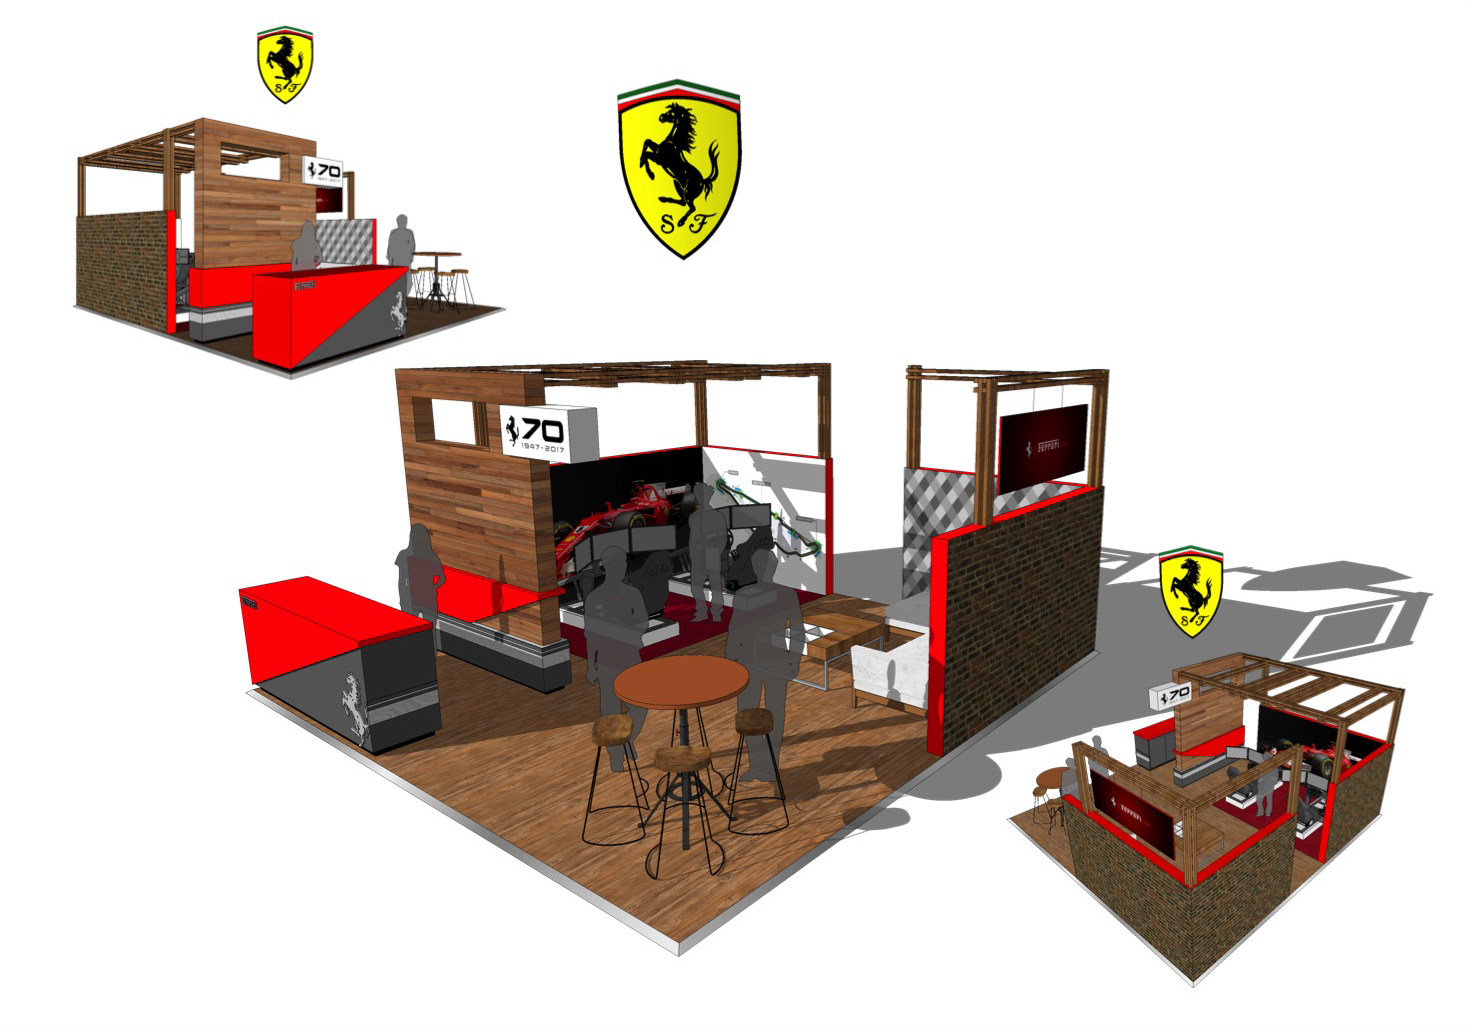 Shell CRTS 2018 Ferrari Design Proposal 3D 20 November 2017_4.jpg